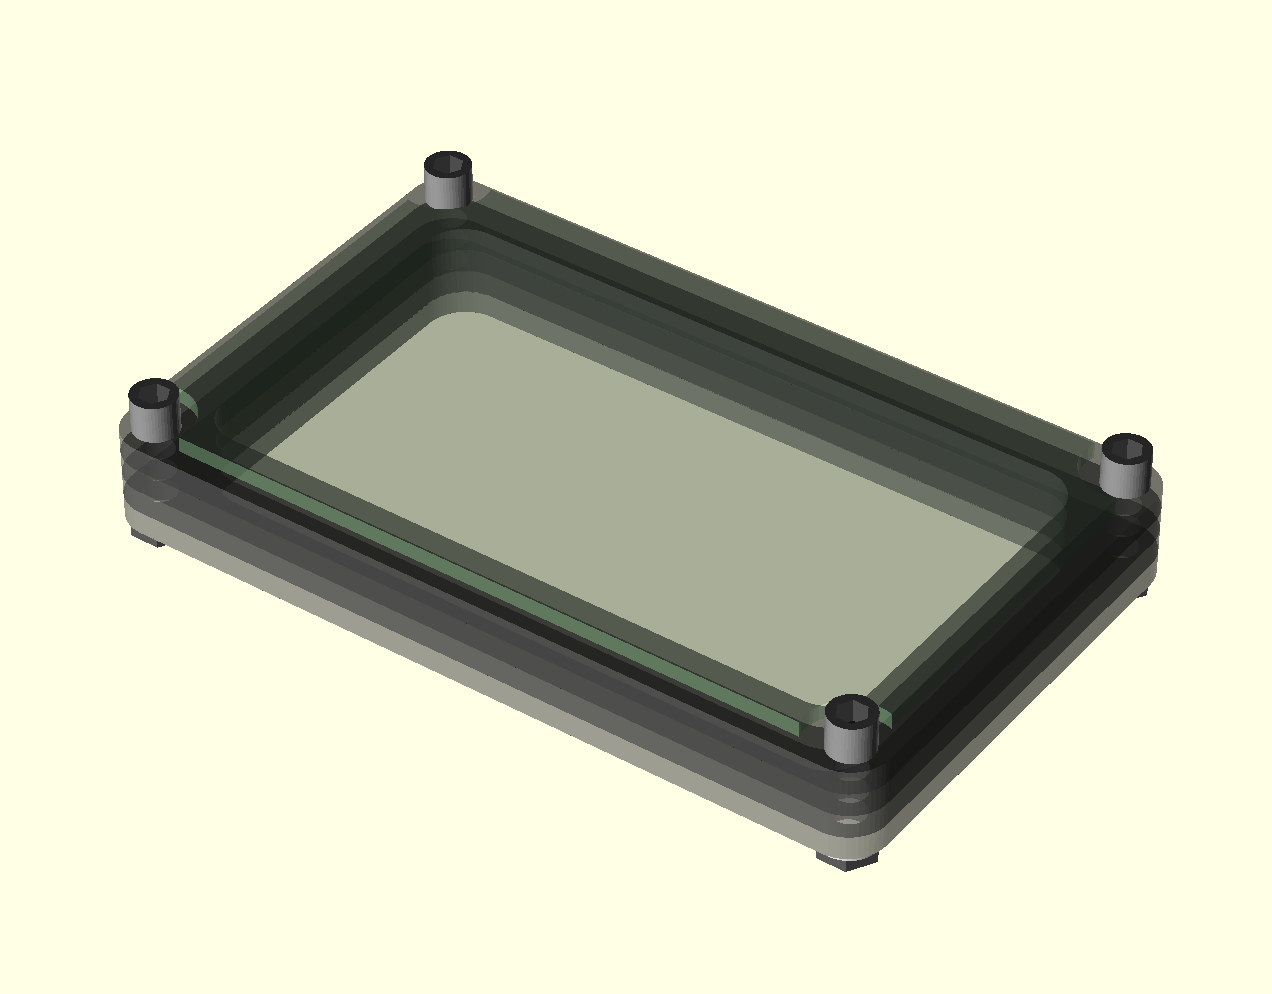 Picture of Generating an Enclosure With OpenSCAD